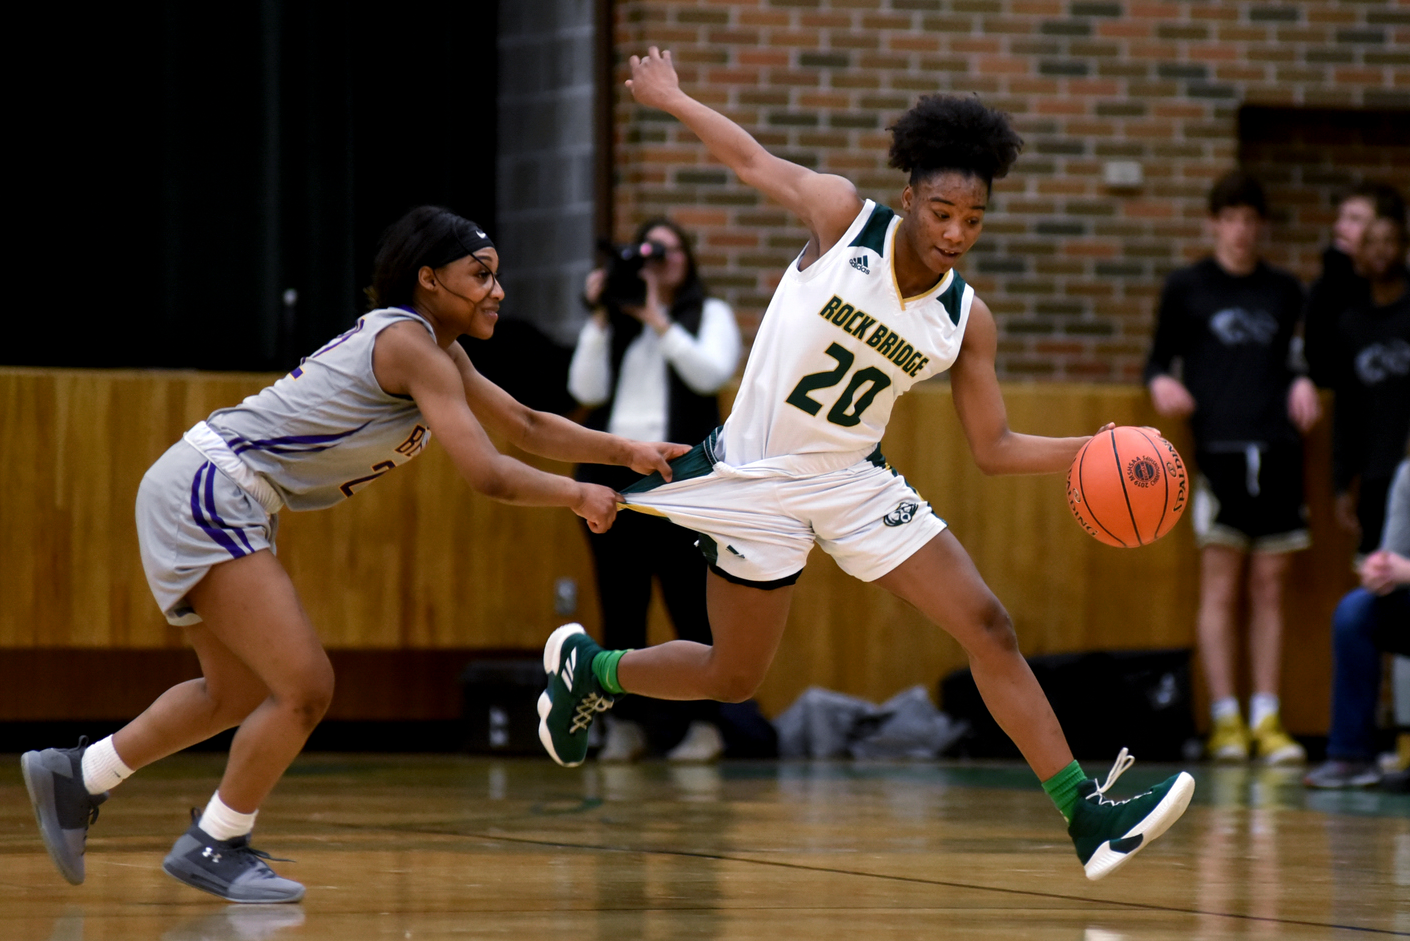 Belton High School senior Danielle Faulkner grabs on to Rock Bridge High School junior Sanaa' St. Andre's shorts Friday at Rock Bridge High School. The Bruins will face Lebanon High School on Wednesday in Sedalia.